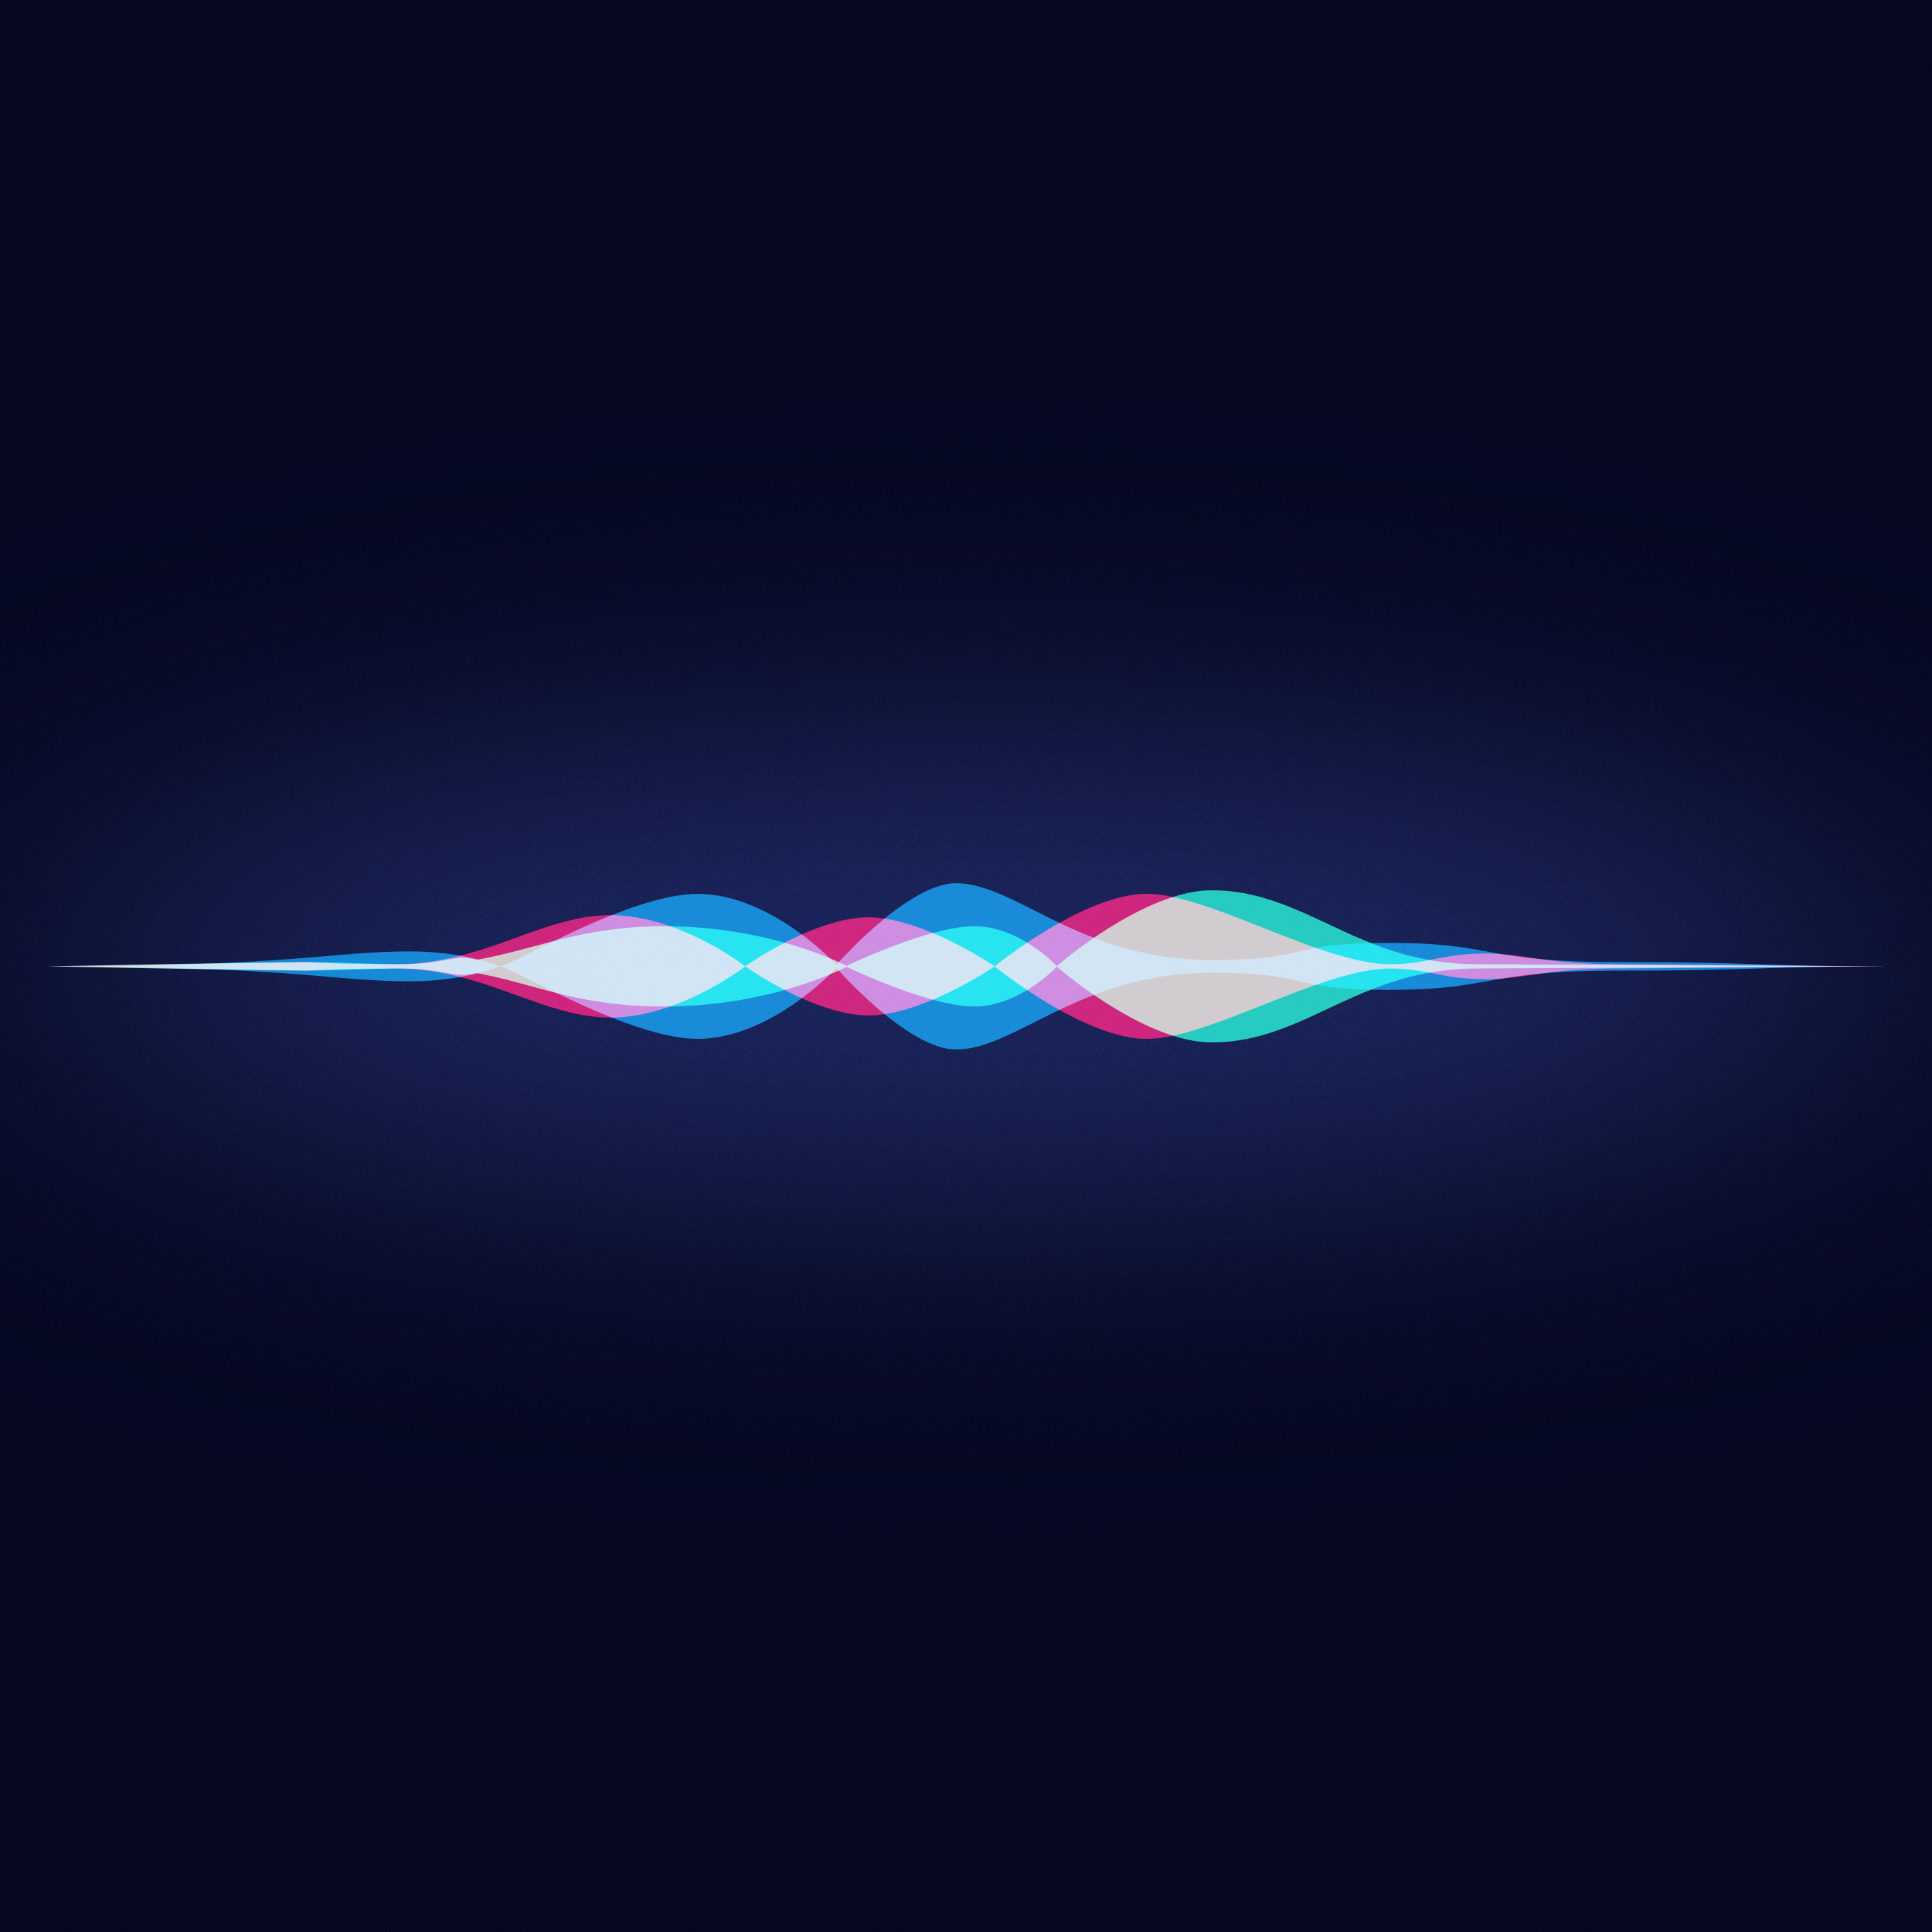 Hipster Wallpaper Iphone Wallpapers Of The Week Hey Siri And Apple Tv